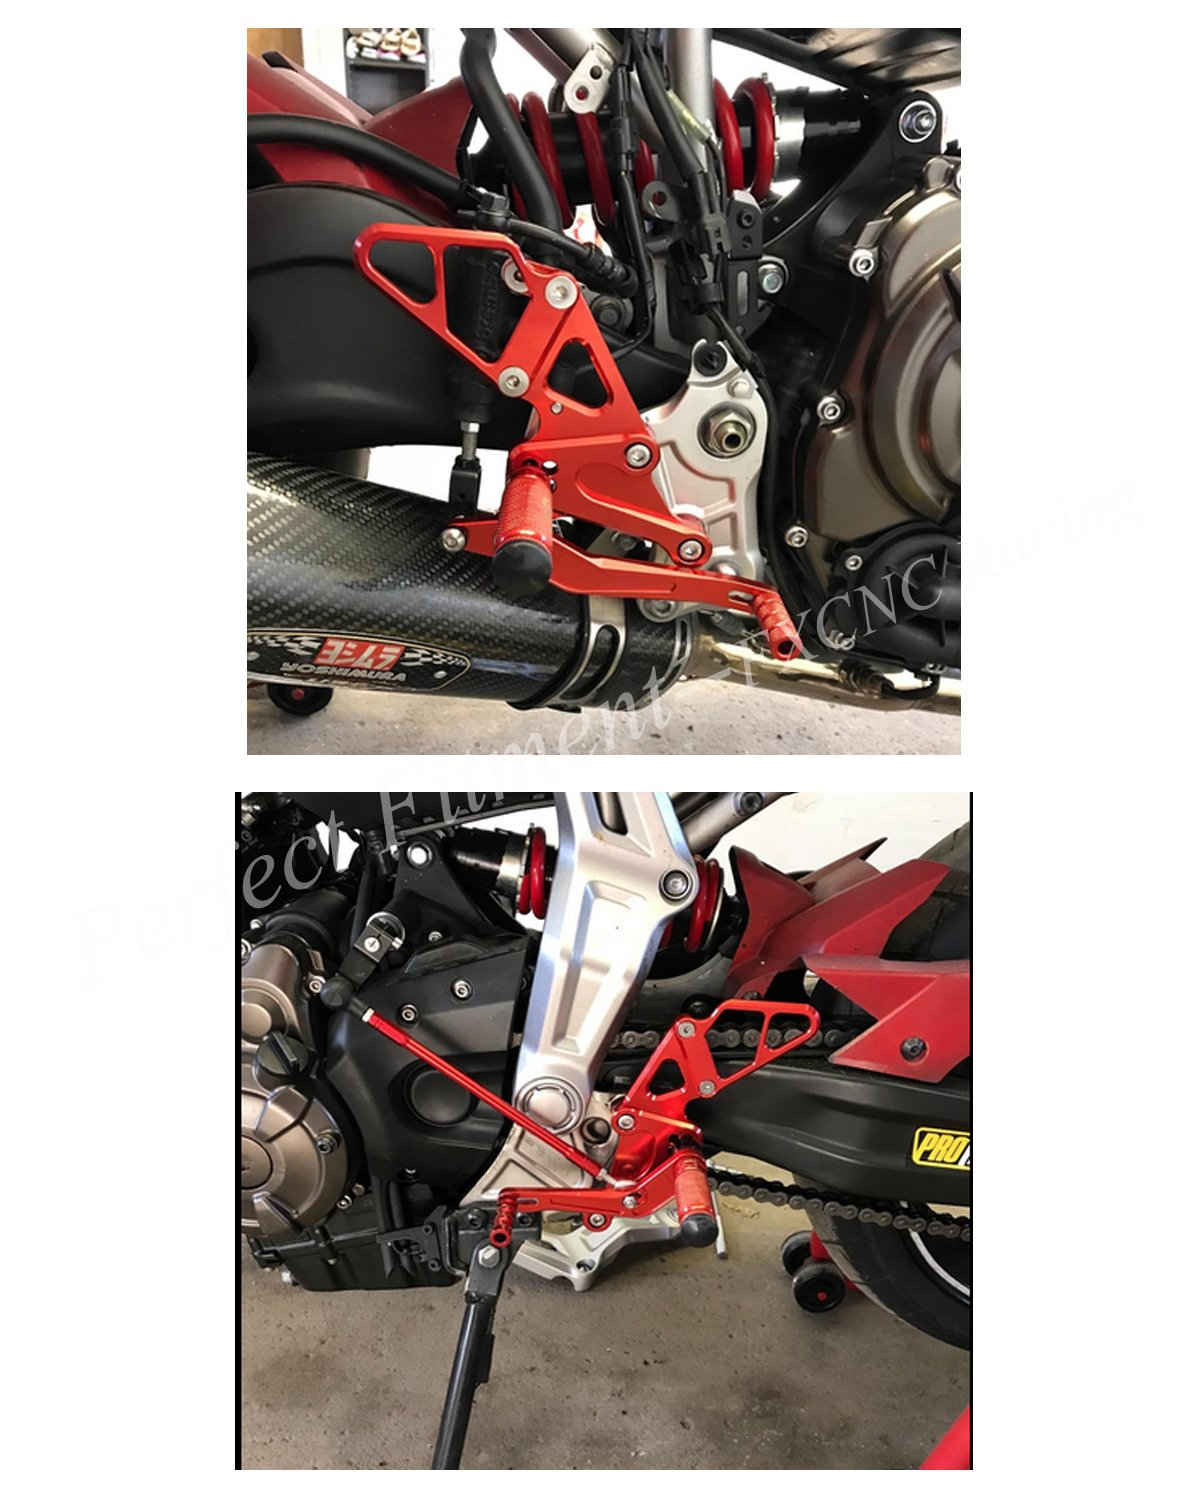 Amazon.com: FXCNC Racing MT07 FZ-07 Billet Motorcycle Rearset Foot Pegs Rear Set Footrests Fully Adjustable Foot Boards Fit For Yamaha MT-07 FZ07 2013 2014 ...